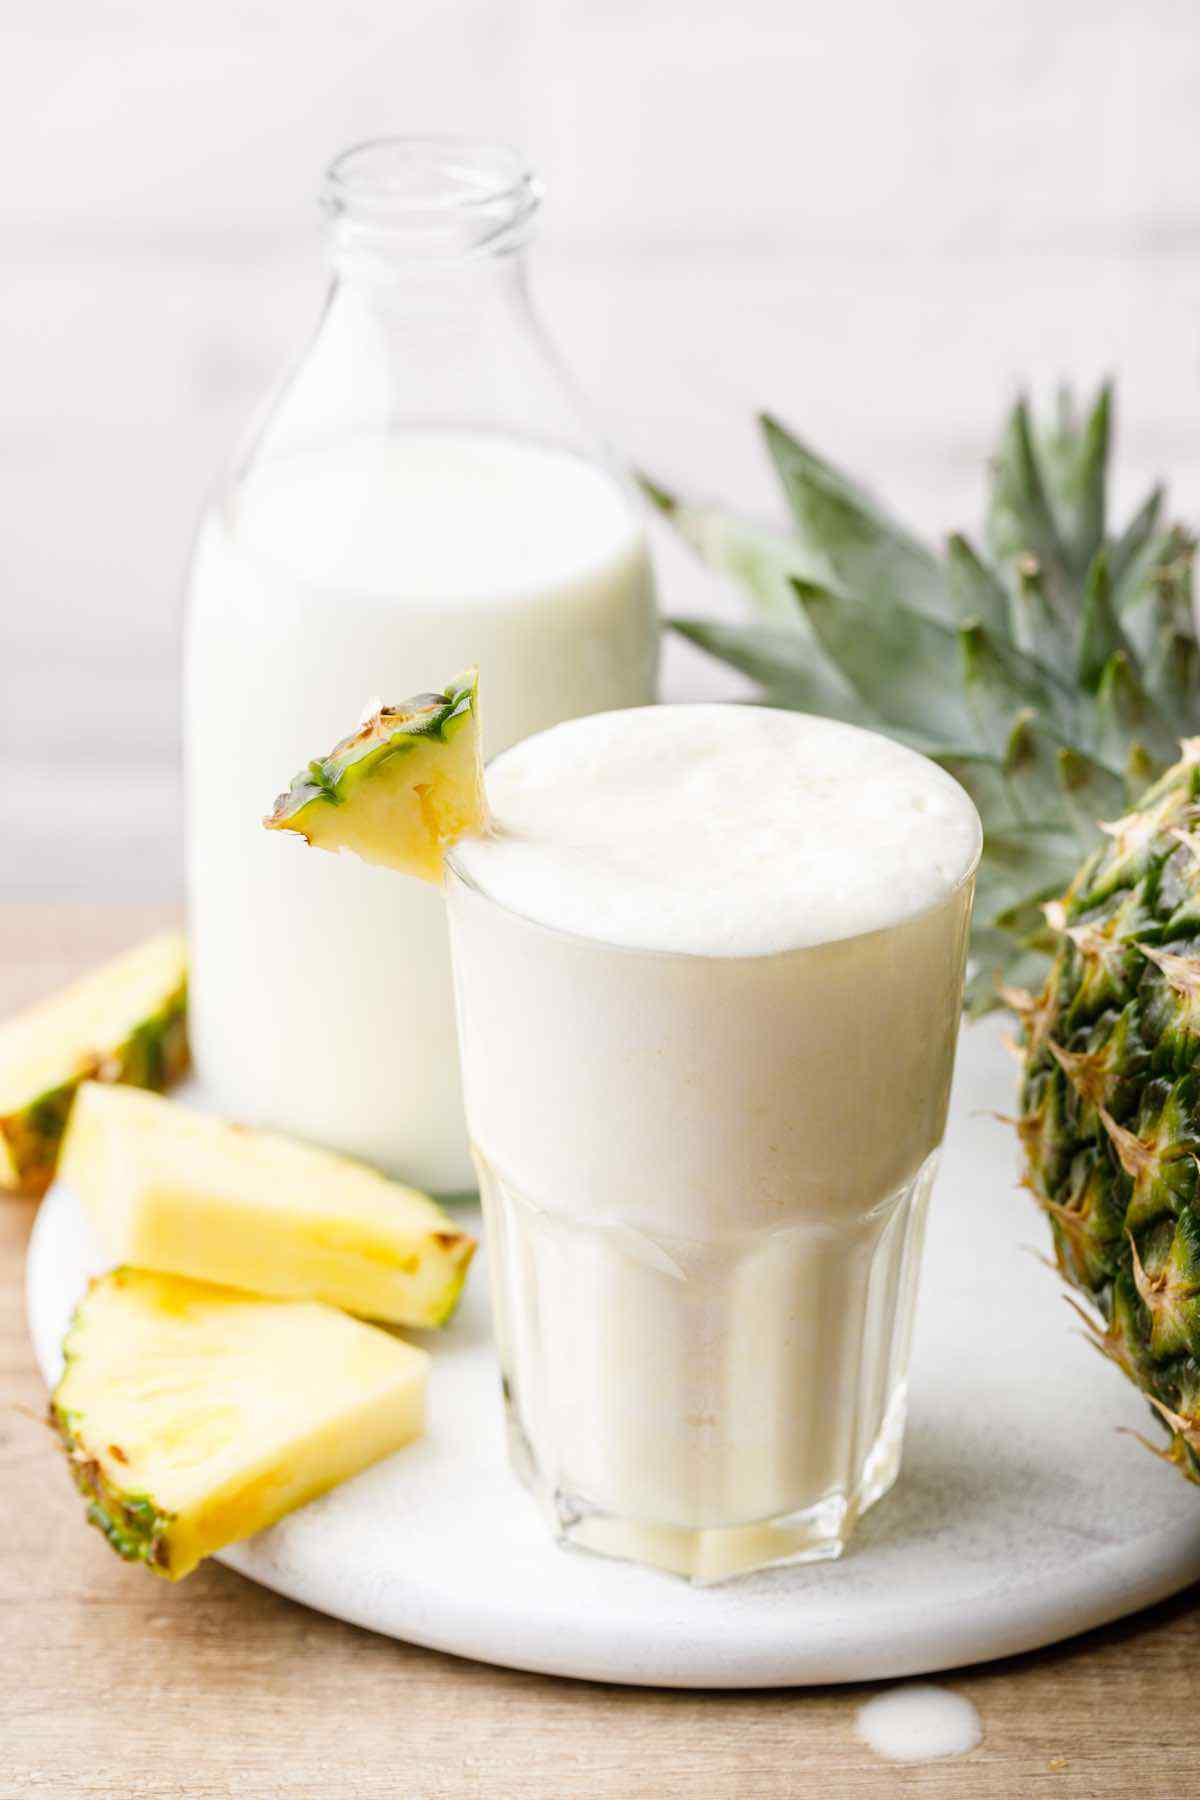 Easy 4-Ingredient Pineapple Smoothie Recipe